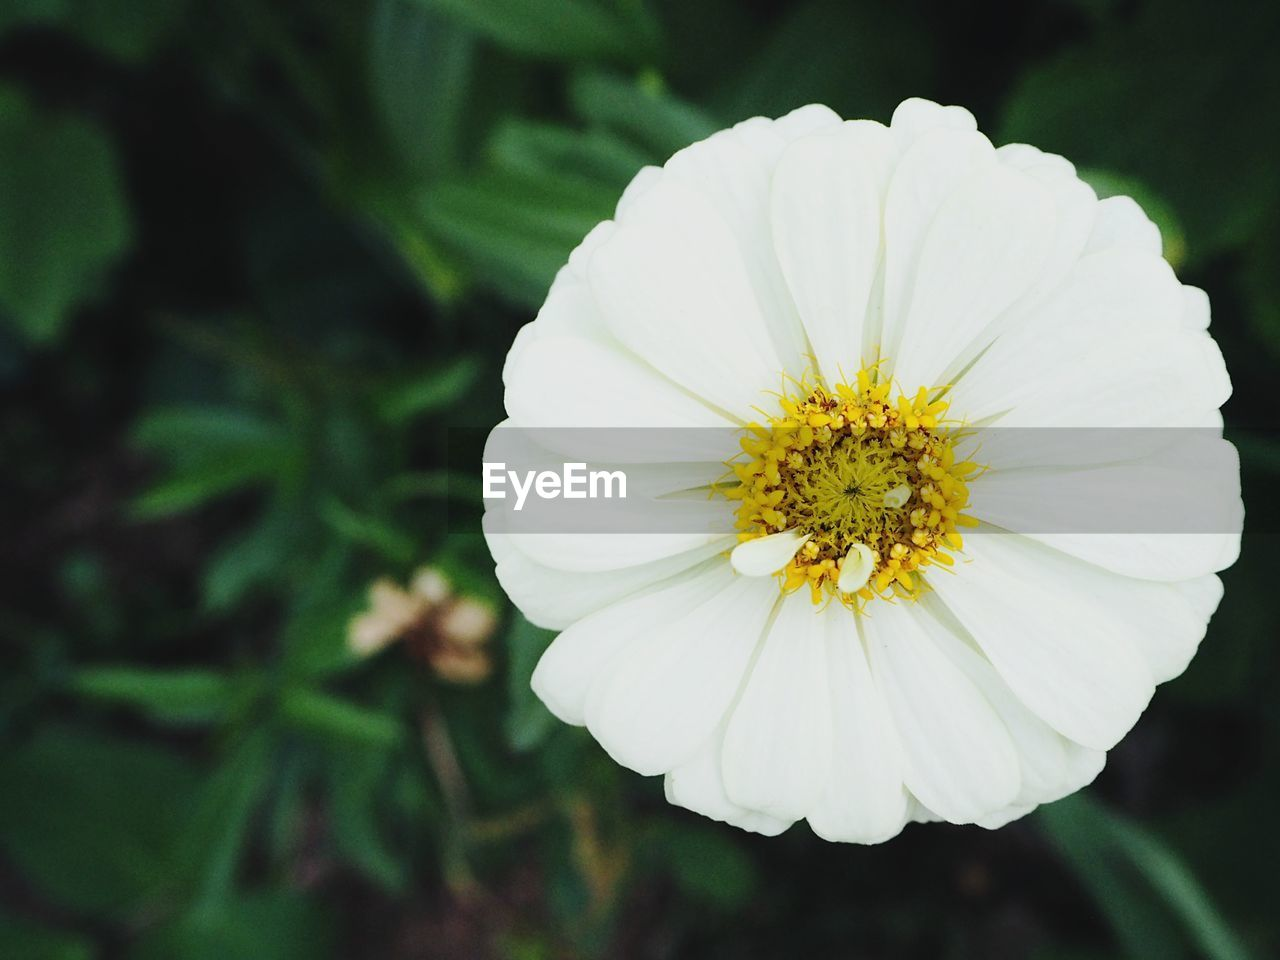 flower, petal, nature, flower head, beauty in nature, fragility, white color, freshness, plant, growth, yellow, blooming, focus on foreground, no people, outdoors, close-up, day